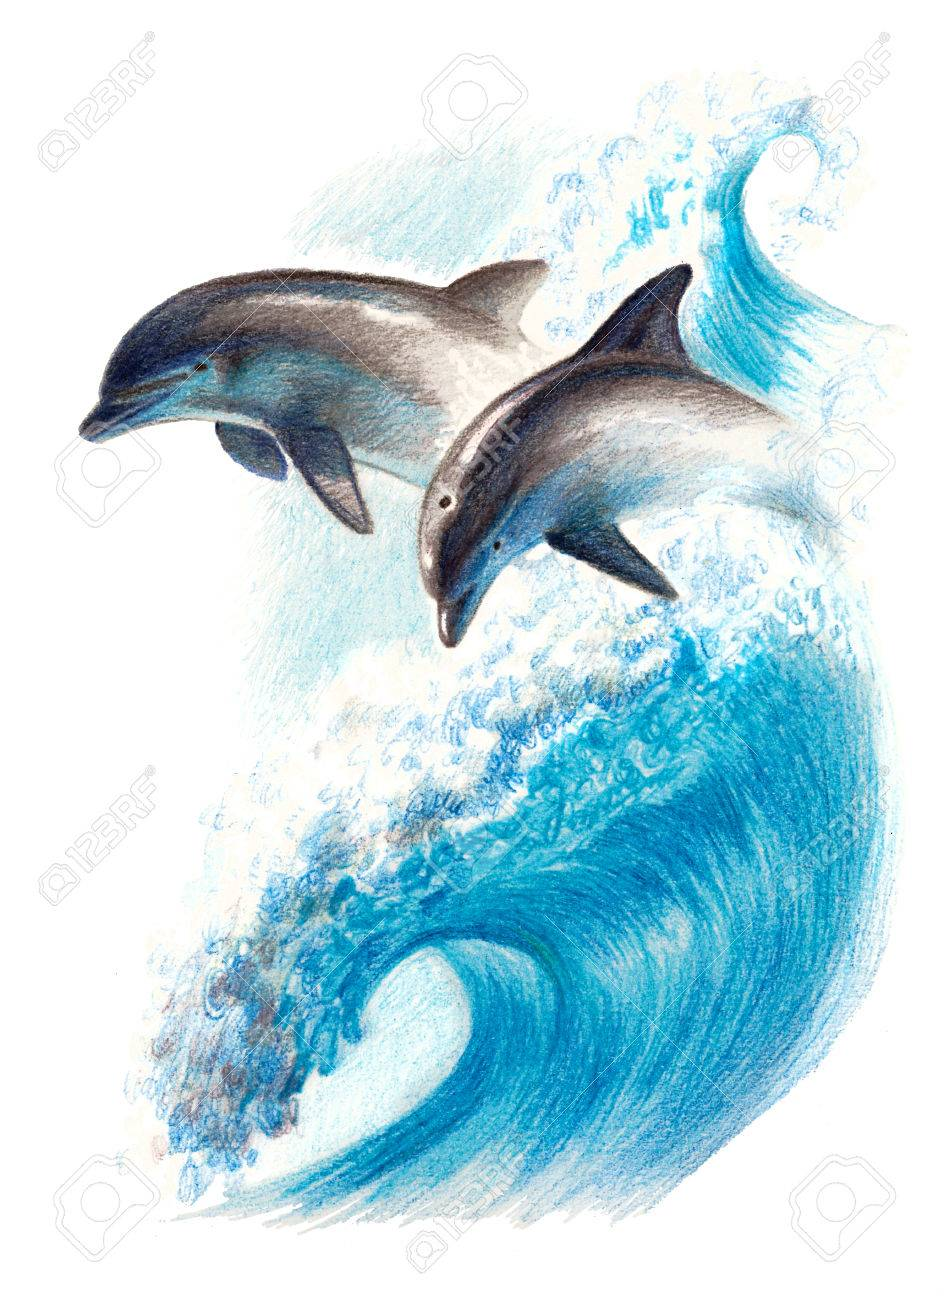 944x1300 Color Drawing Two Dolphins On A Wave. Watercolor Pencils Stock